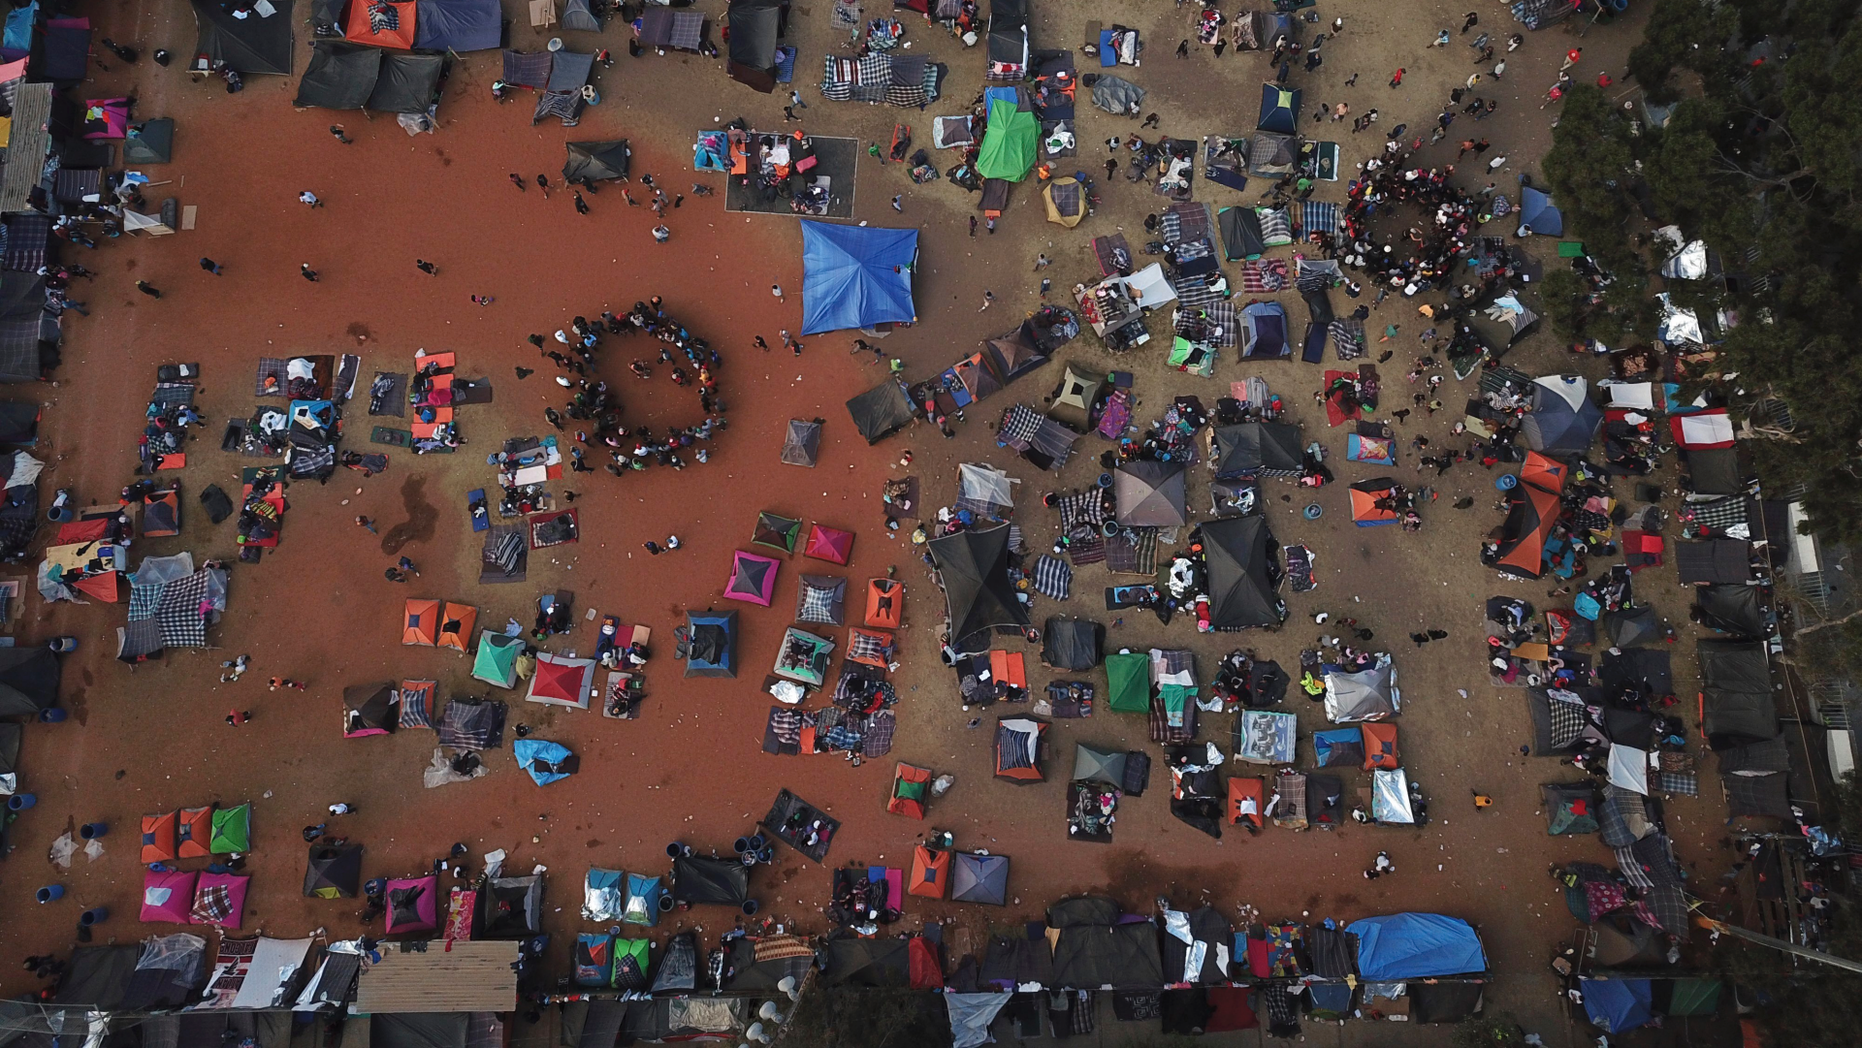 Central American migrants gather in an area designated for them to set up their tents in Tijuana, Mexico, Wednesday, Nov. 21, 2018. Migrants camped in Tijuana after traveling in a caravan to reach the U.S are weighing their options after a U.S. court blocked President Donald Trump's asylum ban for illegal border crossers. (AP Photo/Rodrigo Abd)